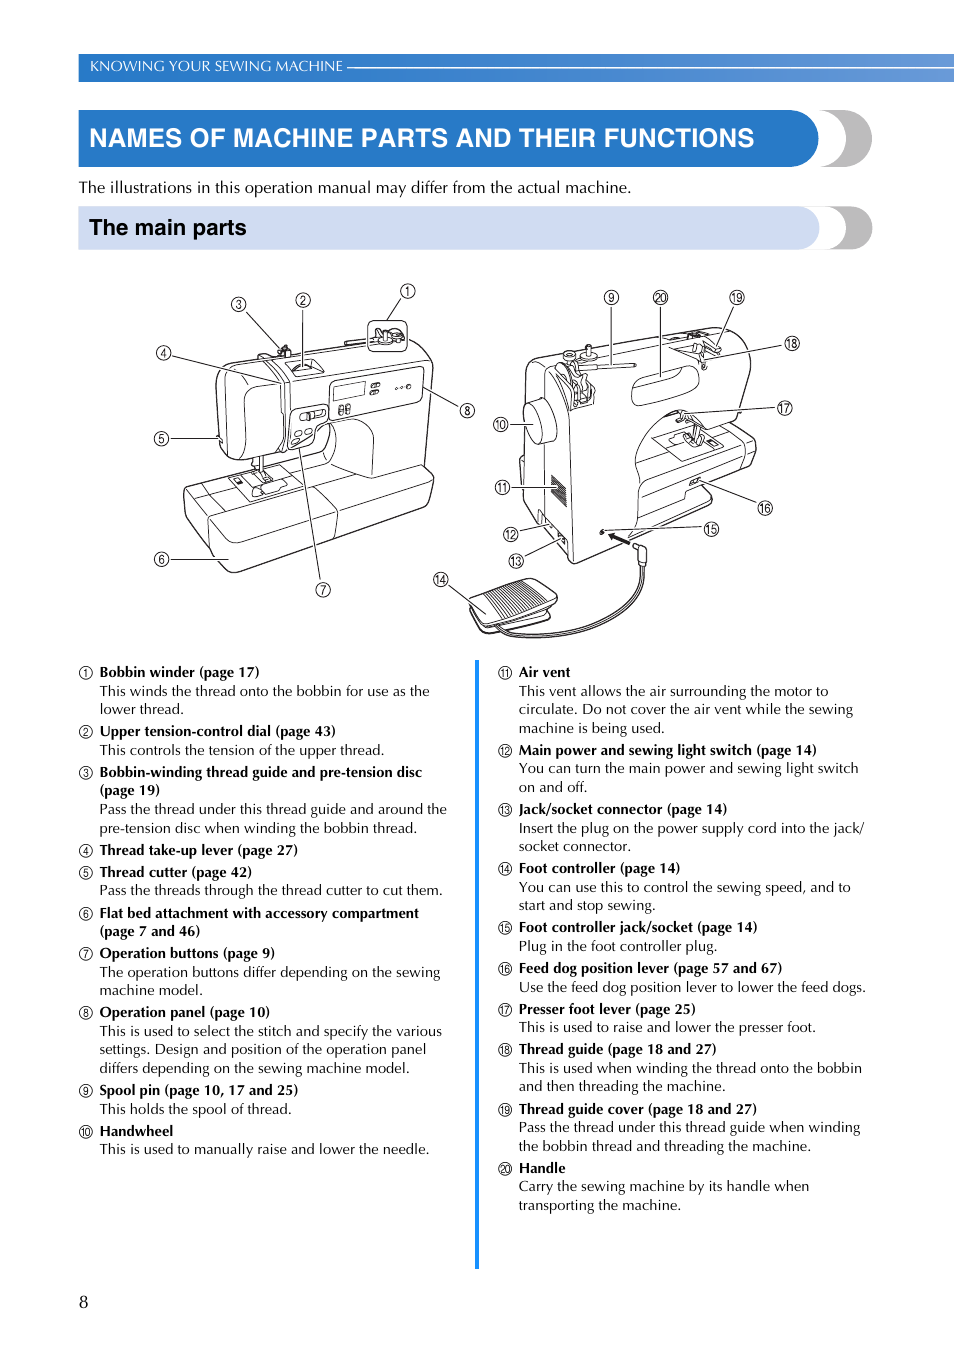 Names For Sewing Machine Parts Diagram Electrical Wiring Of And Their Functions The Main Brother Rh Manualsdir Com School Labeled